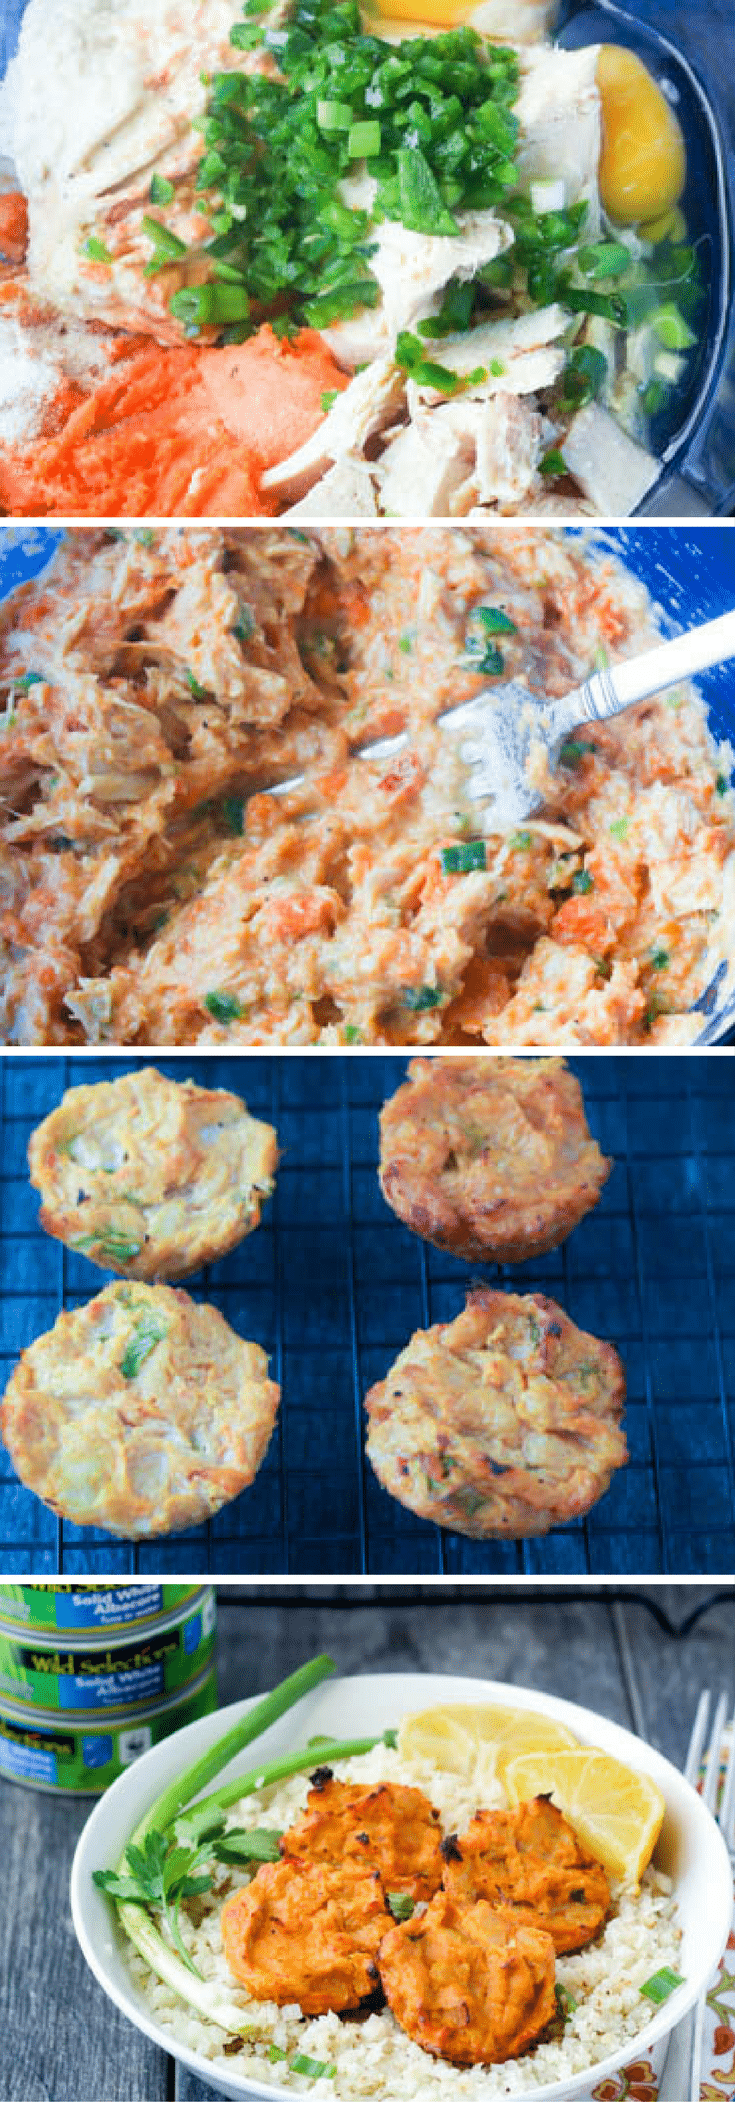 Spicy Tuna Hummus Cakes are flaky and flavorful in every bite.  Full of healthy protein and energizing carbs to keep you moving all day!